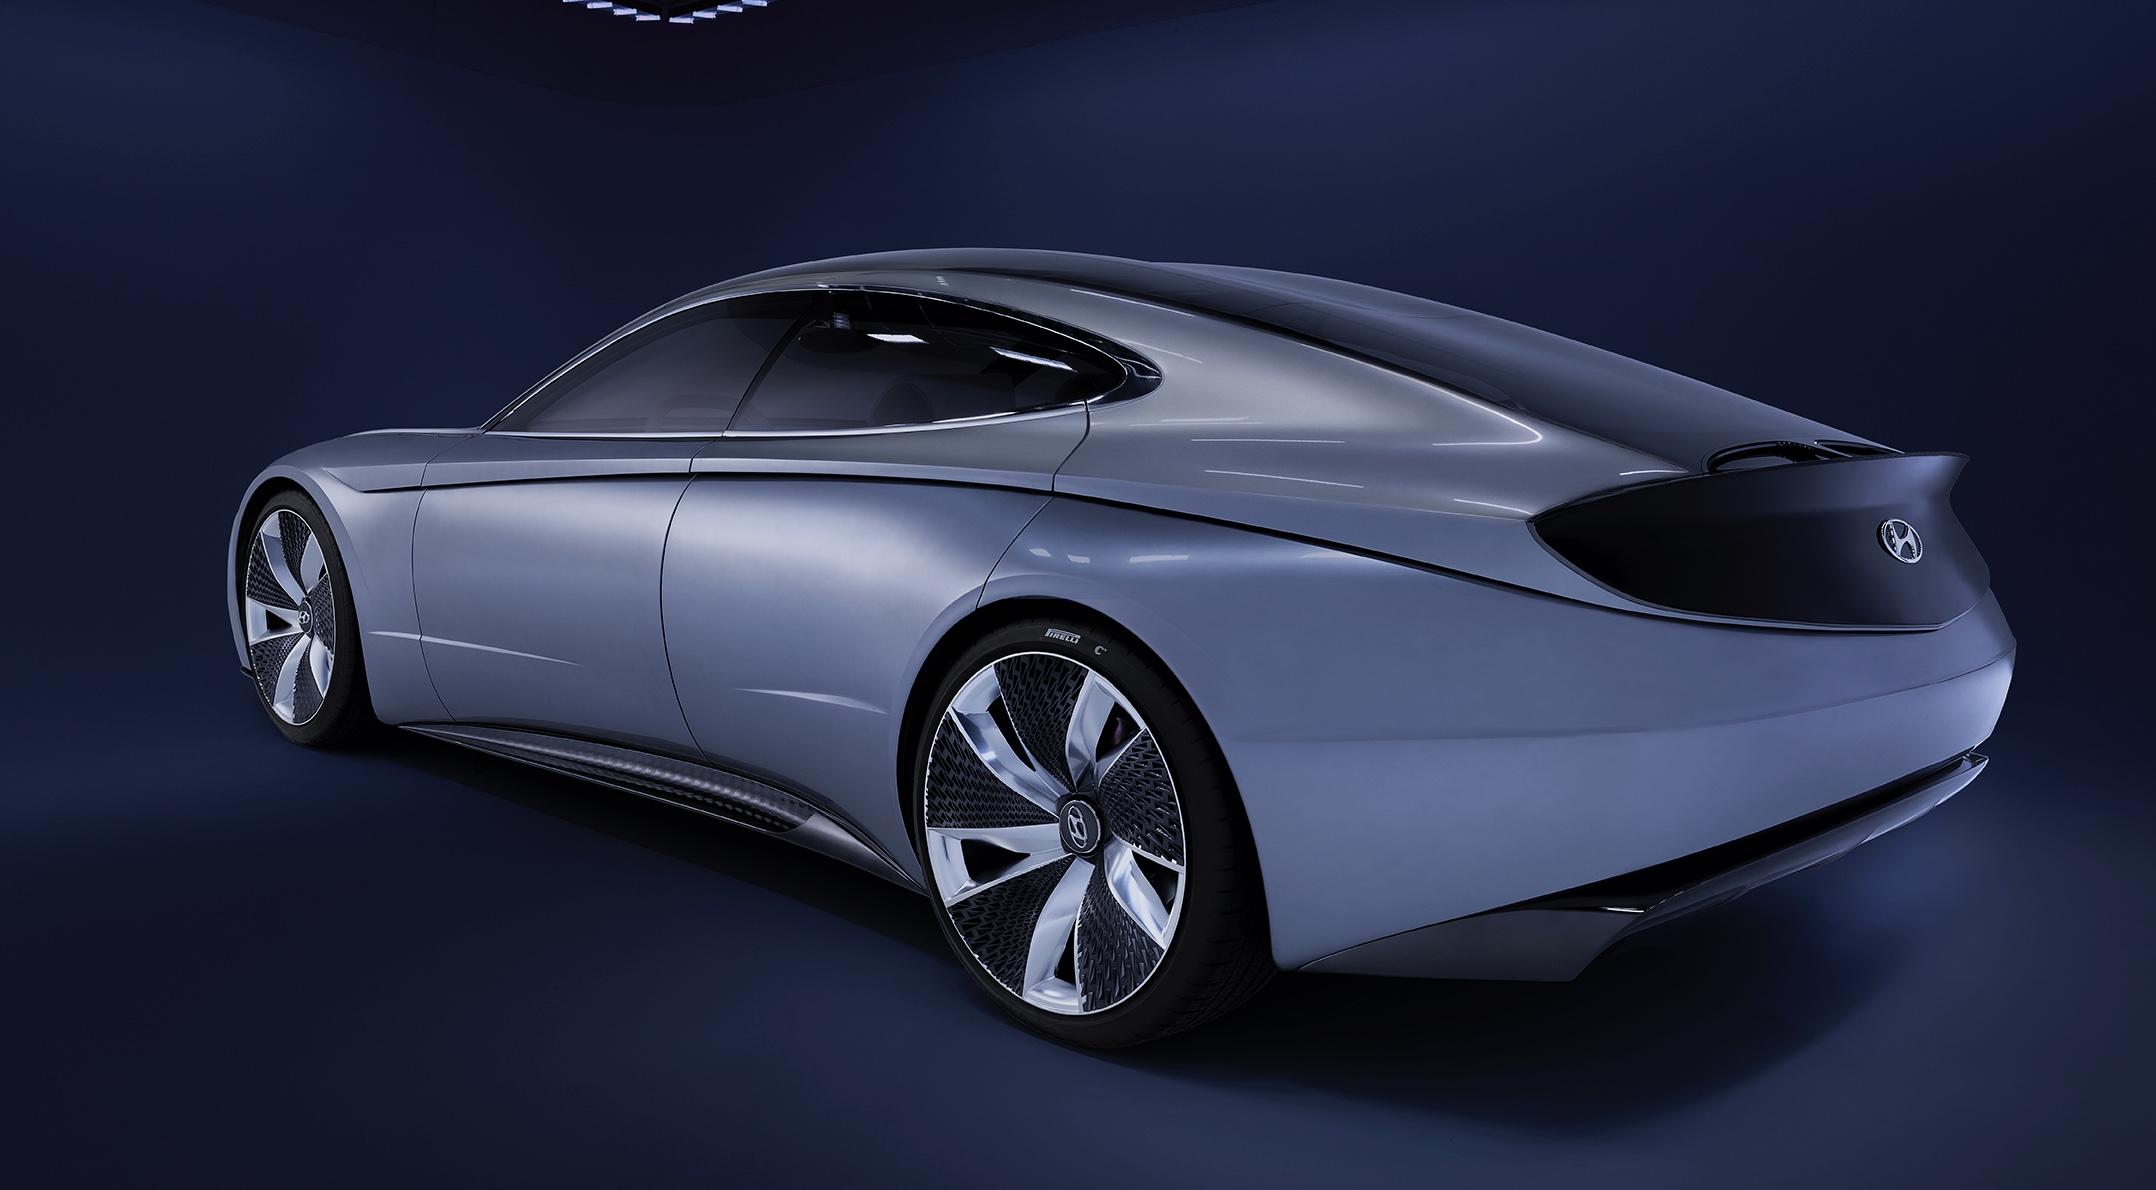 Poetry In Motion Hyundai S New Concept Car Le Fil Rouge